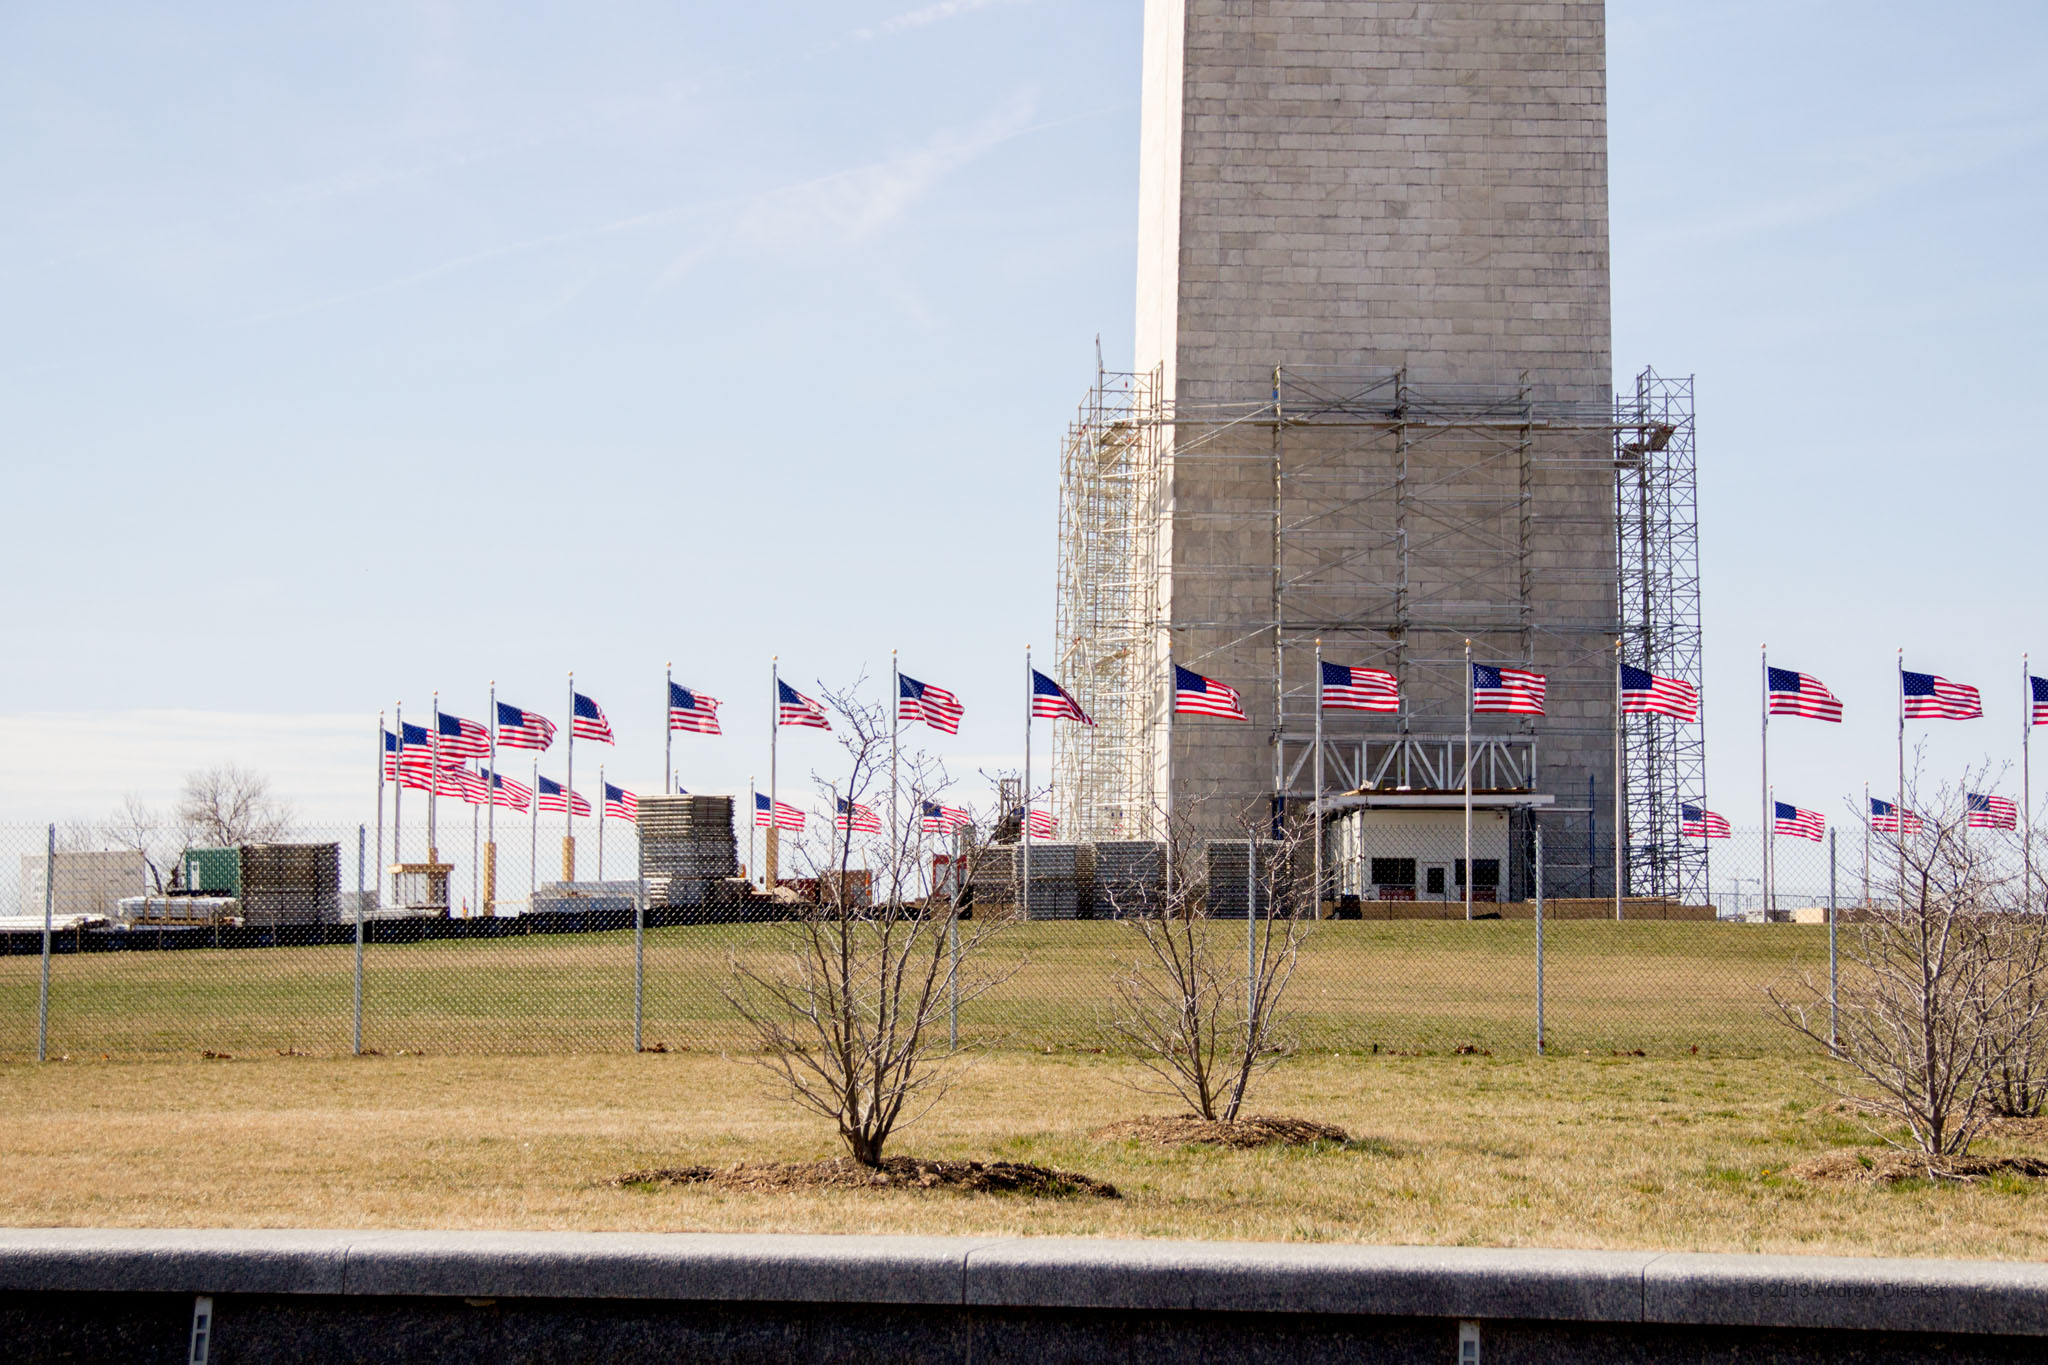 base of the Washington Monument with flags and scaffolding